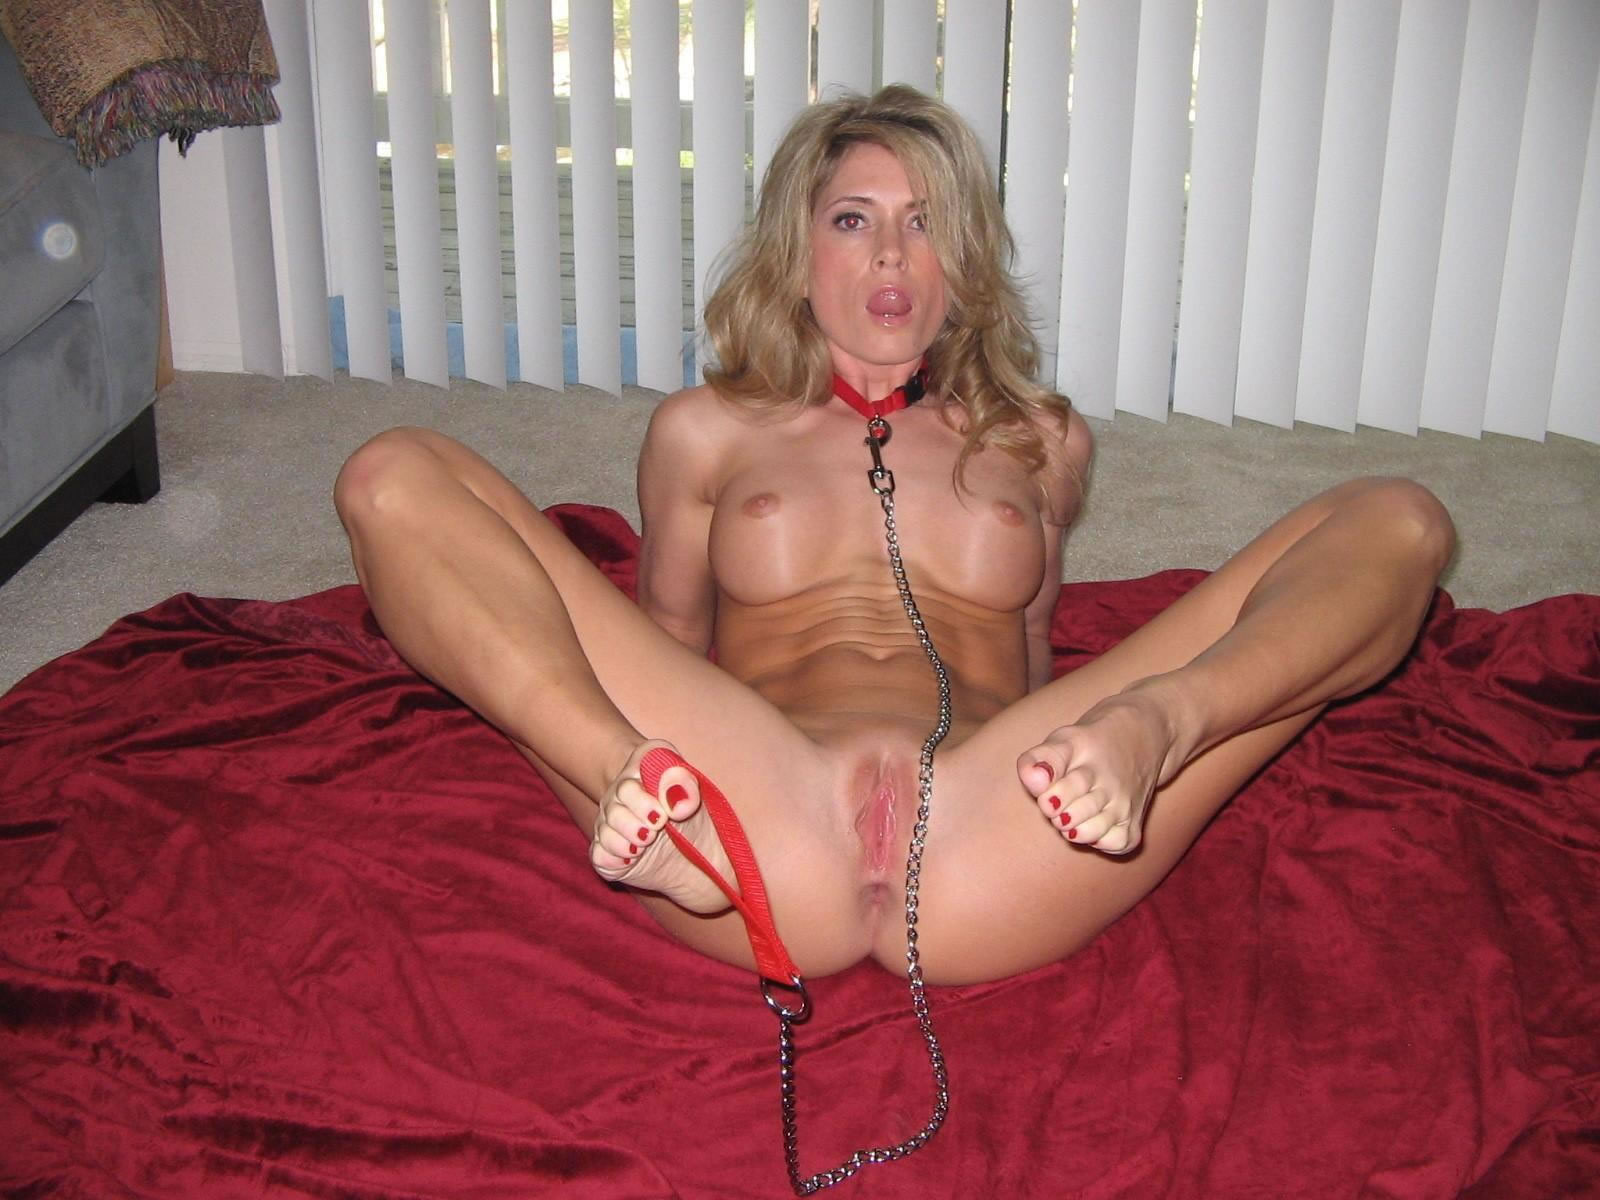 Humiliated Com Delightful sweethearts free samples